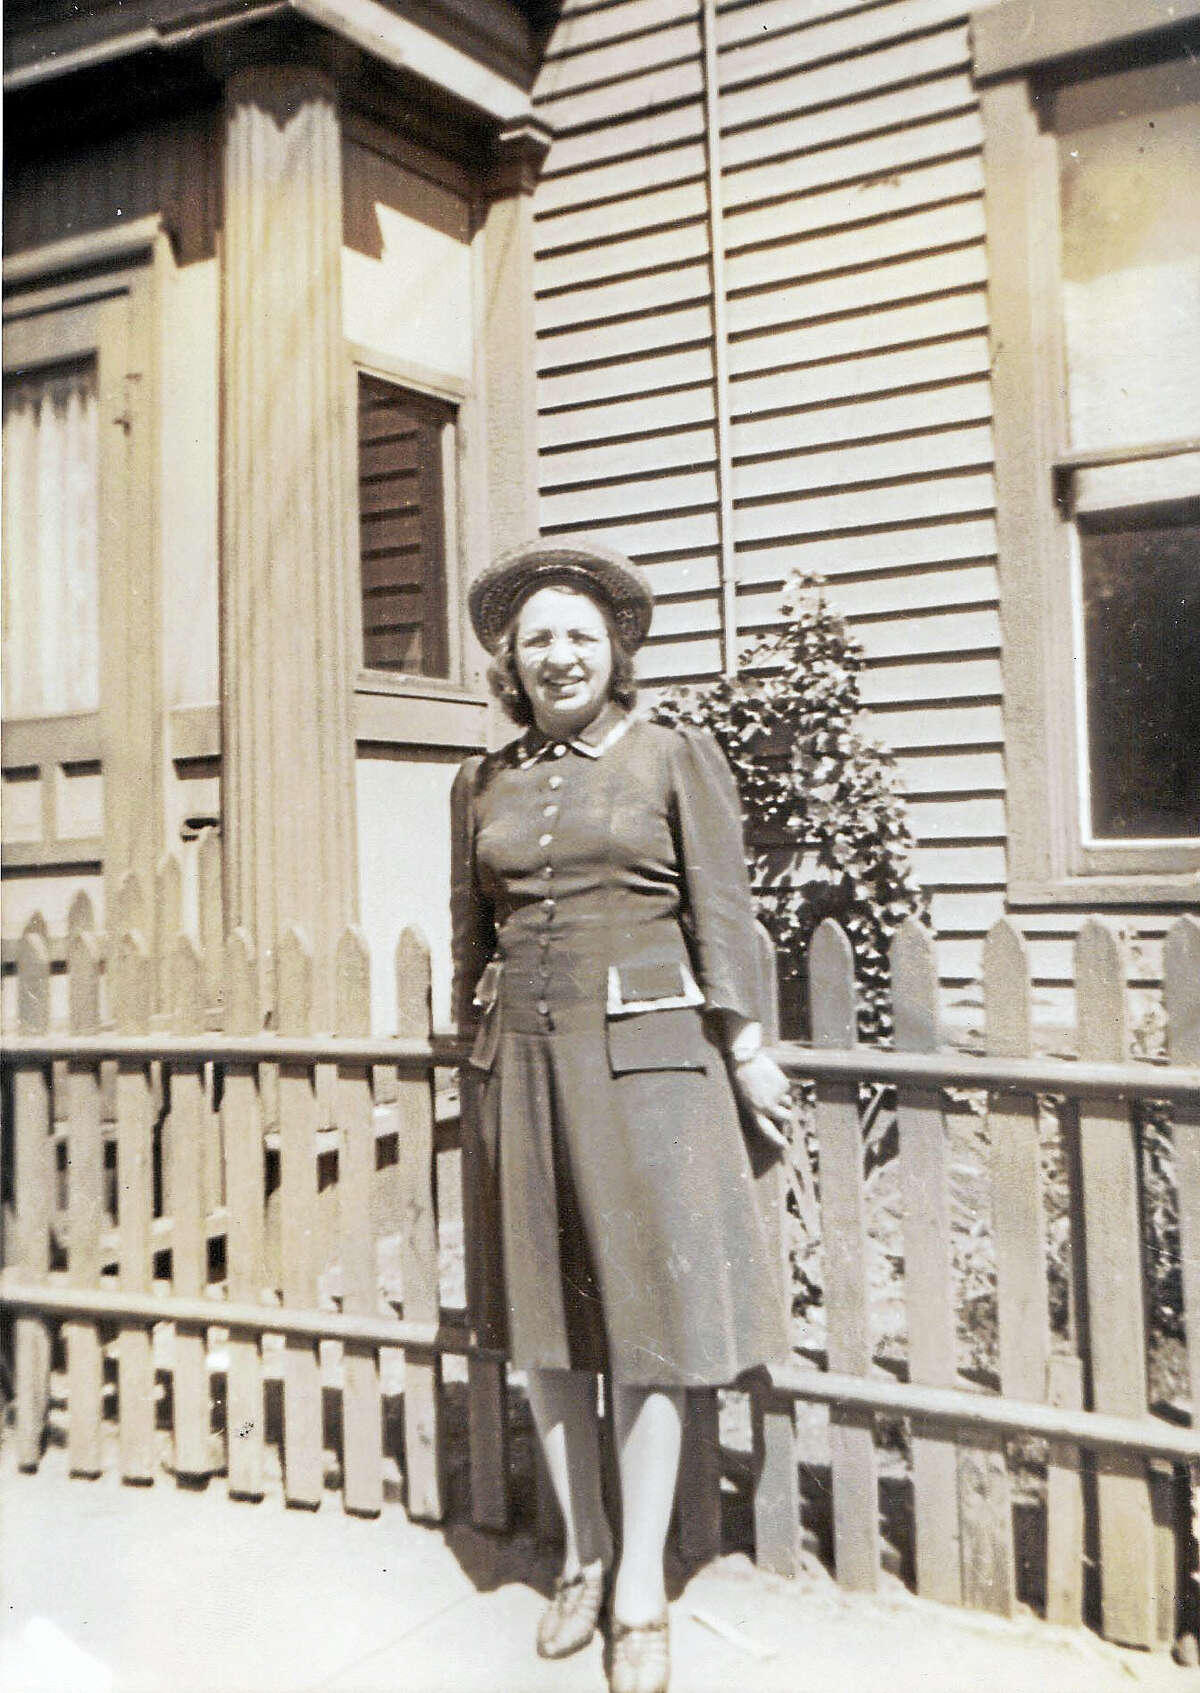 Photo courtesy Richard BiondoTeresa Falcigno, the daughter of immigrants of Amalfi, acted as owner, salesperson, and bookkeeper of four-story Teresa Furniture on Grand Avenue. Photo taken in the 1940s.